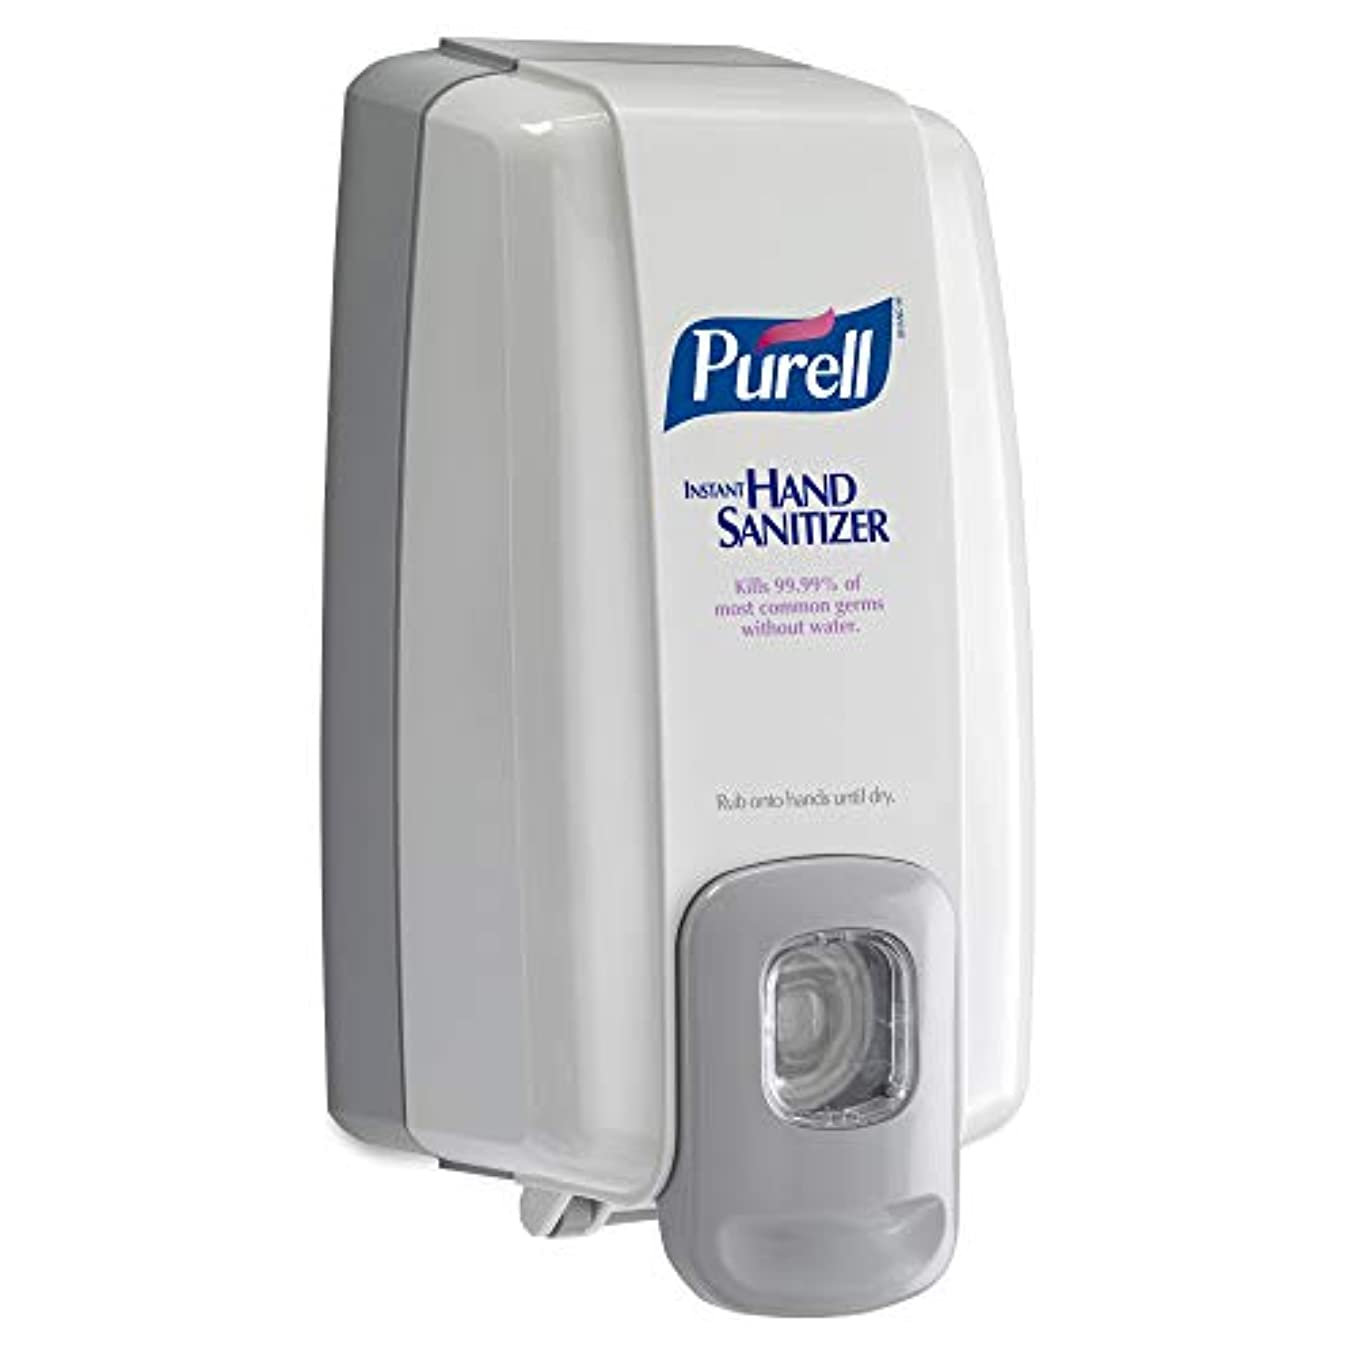 危険印刷する根拠NXT Instant Hand Sanitizer Dispenser, 1000ml, 5-1/8w x 4d x 10h, WE/Gray (並行輸入品)